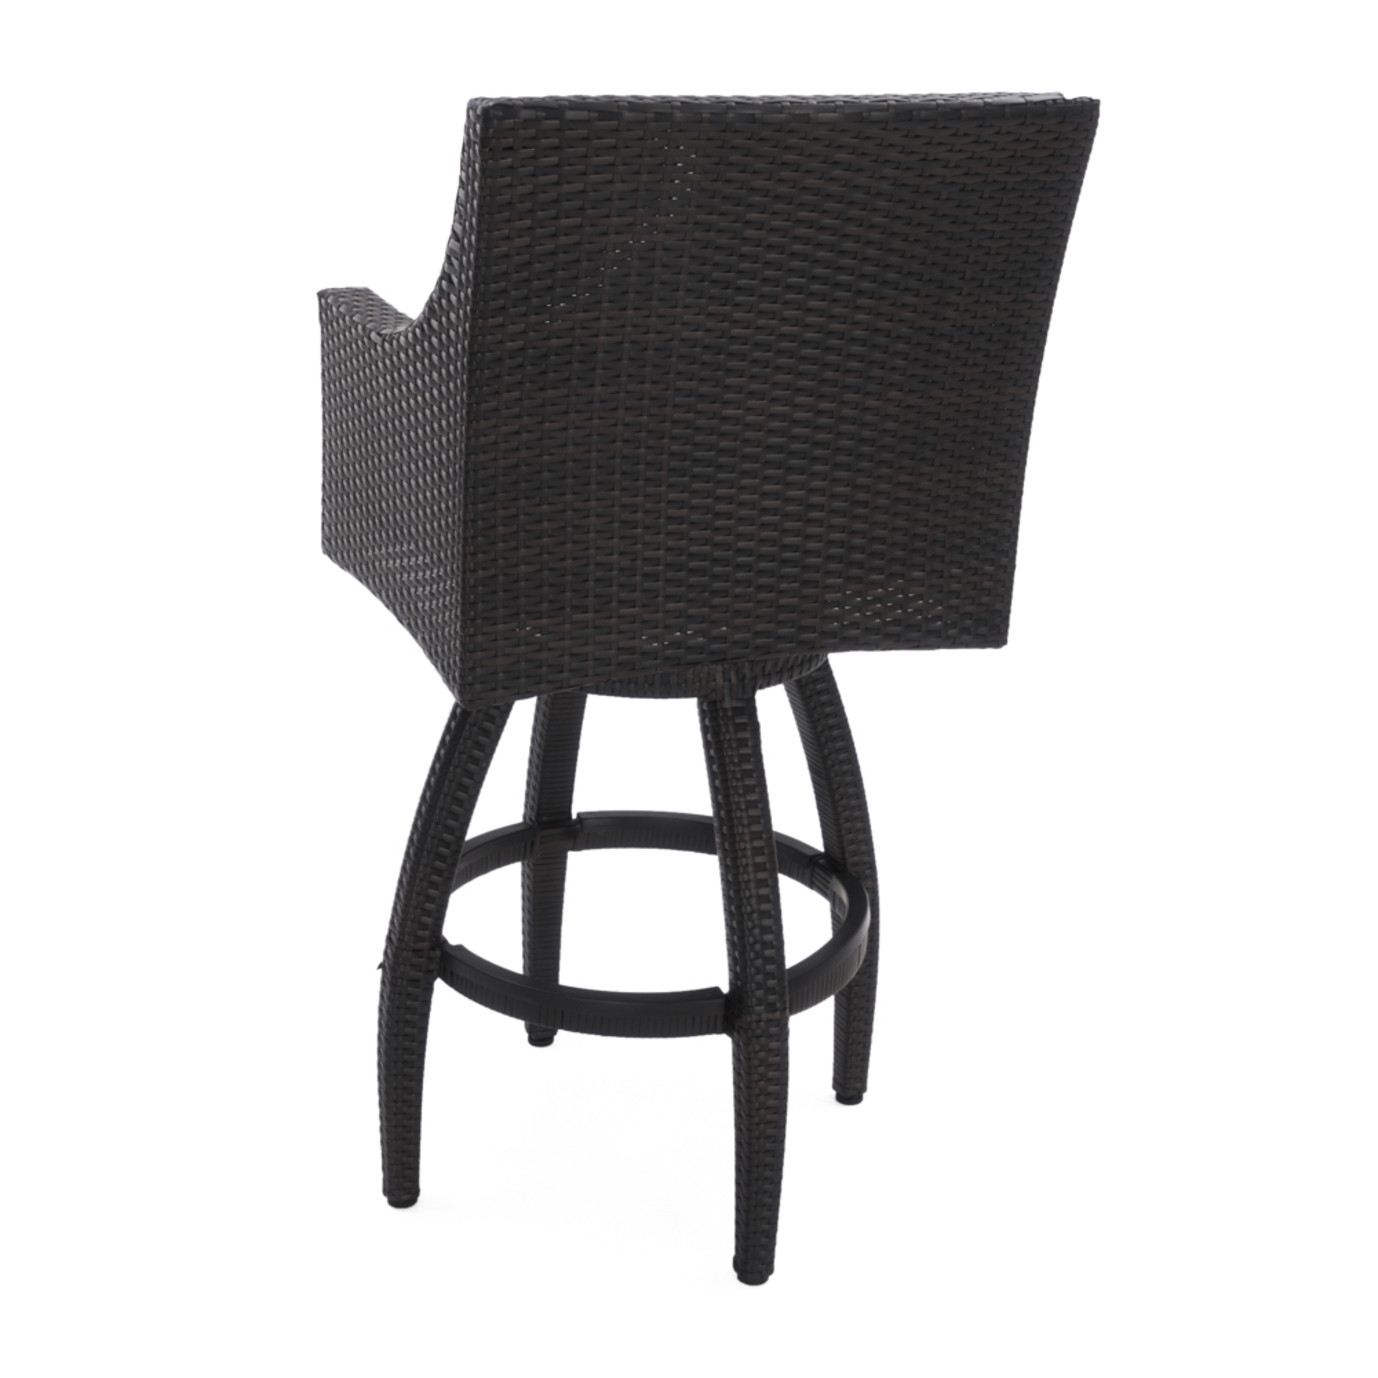 Deco™ 5pc Barstool Set - Spa Blue